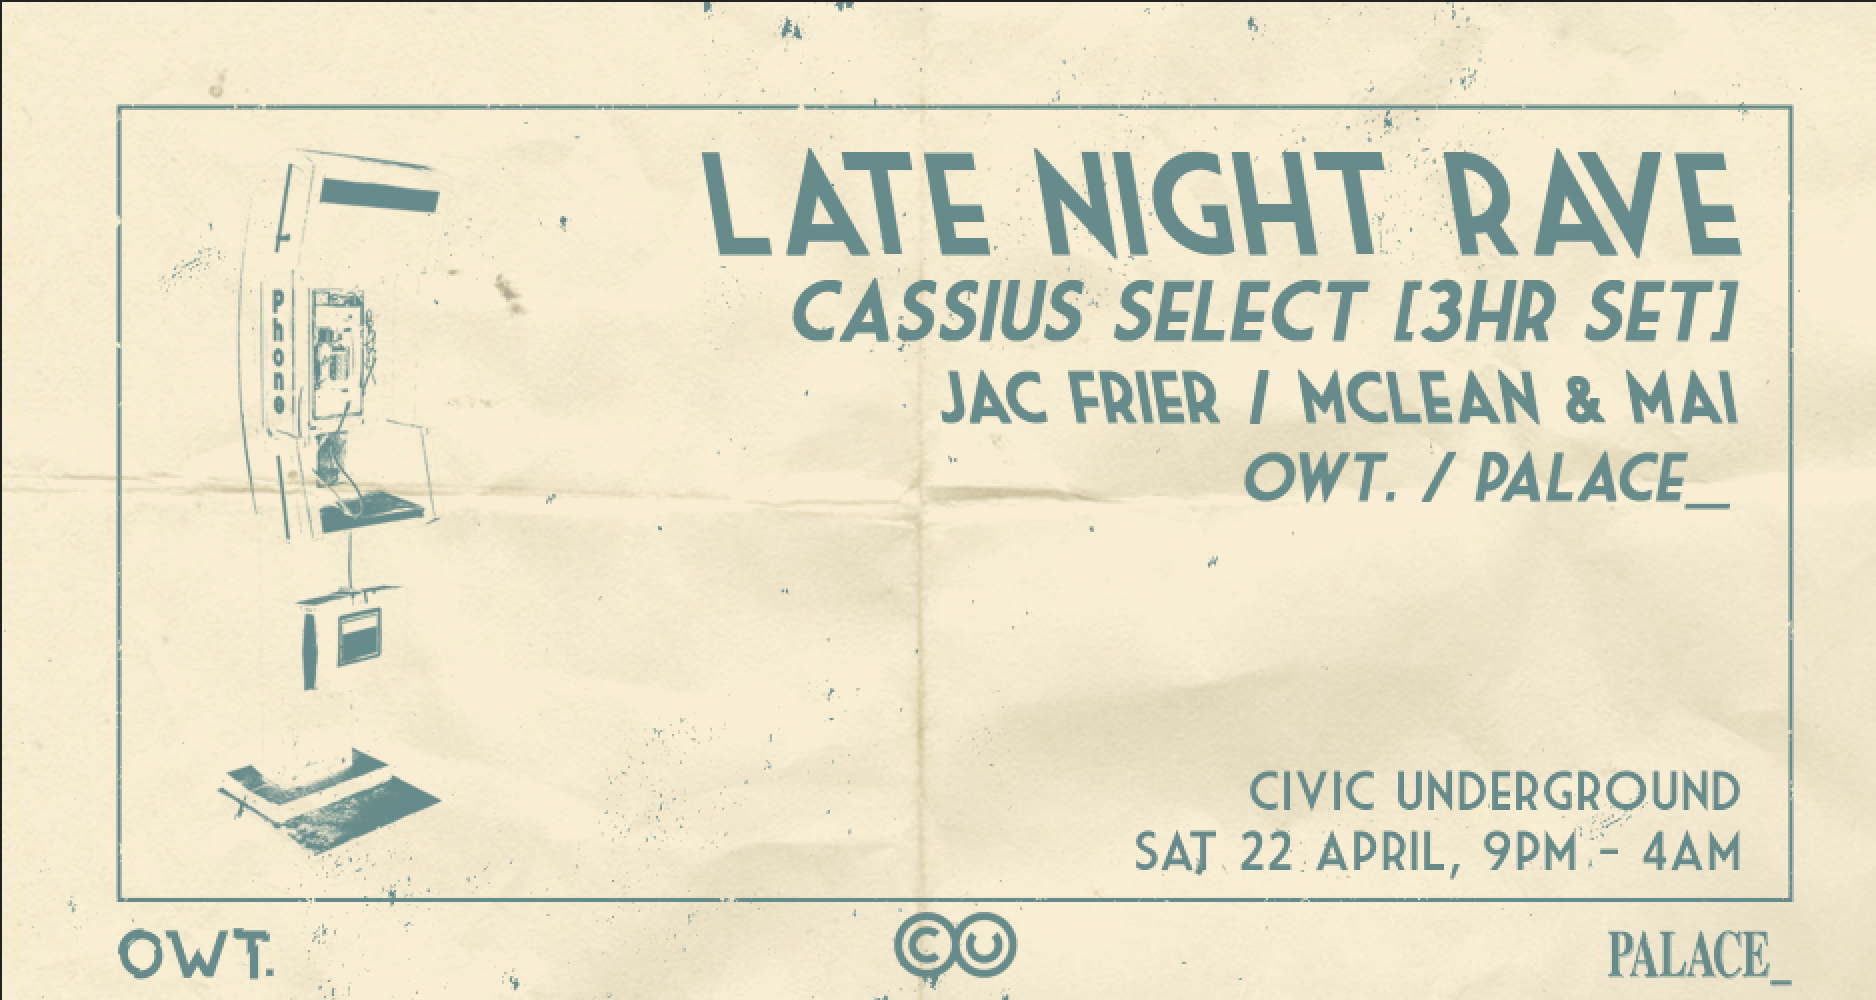 Tickets for LATE NIGHT RAVE w/ Cassius Select (3hr Set) in Sydney from Ticketbooth